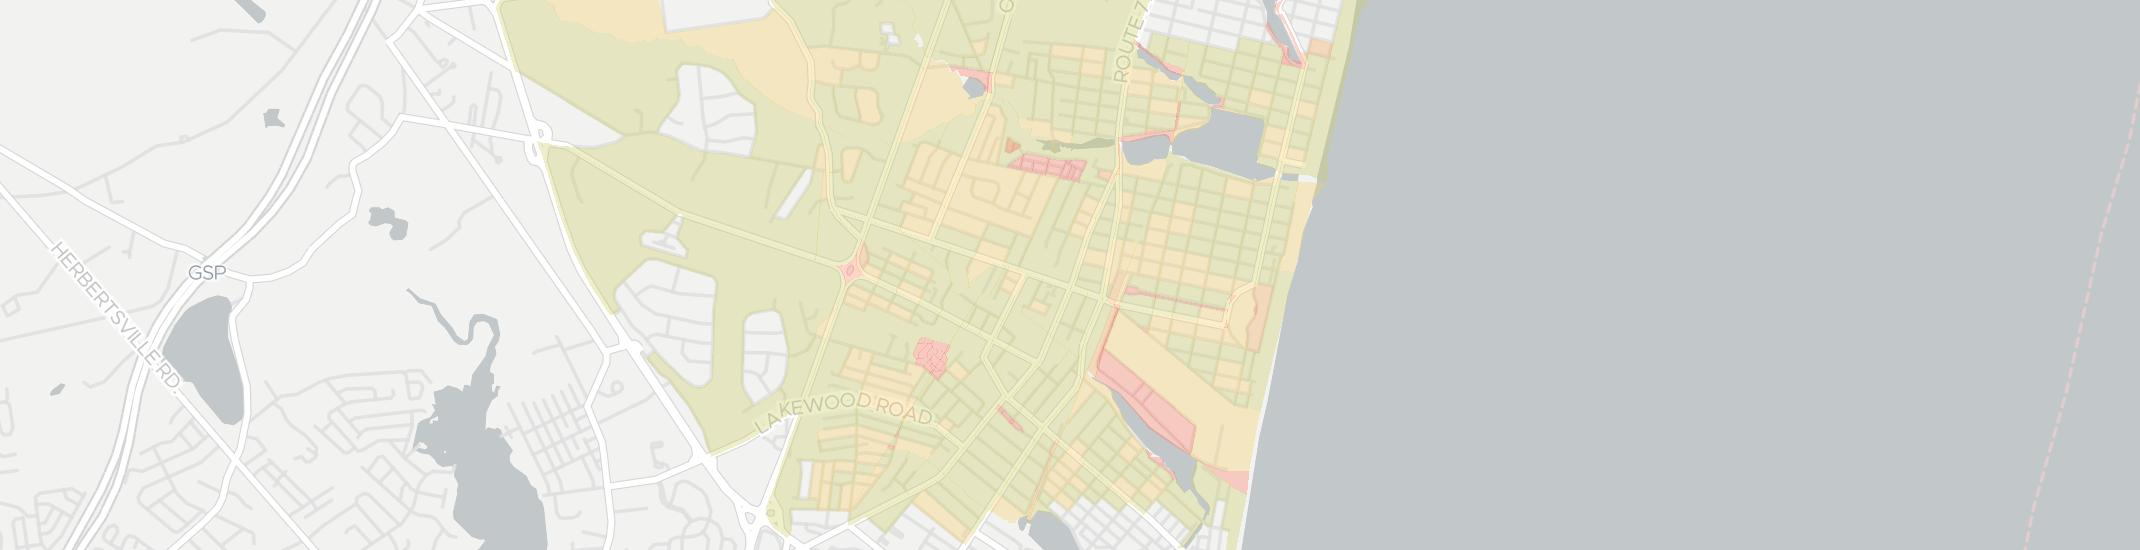 Sea Girt Internet Competition Map. Click for interactive map.